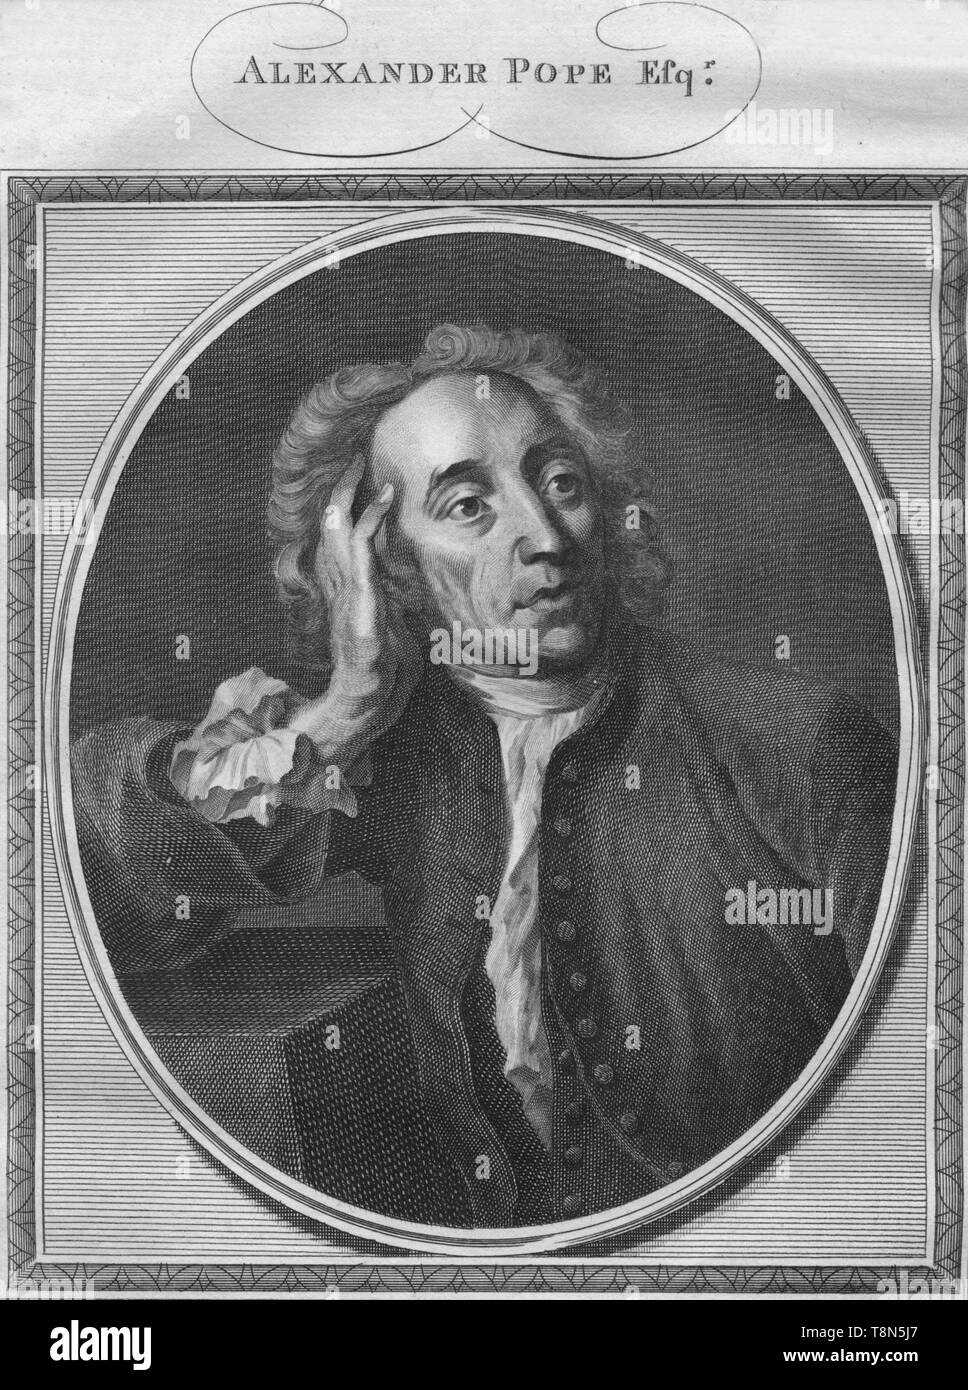 """'Alexander Pope Esq.', 1785. Alexander Pope (1688-1744), 18th-century English poet, he suffered numerous health problems and made enemies with his satire and criticisms of prominent figures. From """"The History of England"""" by Paul de Rapin-Thoyras. [Harrison, London, England] - Stock Image"""